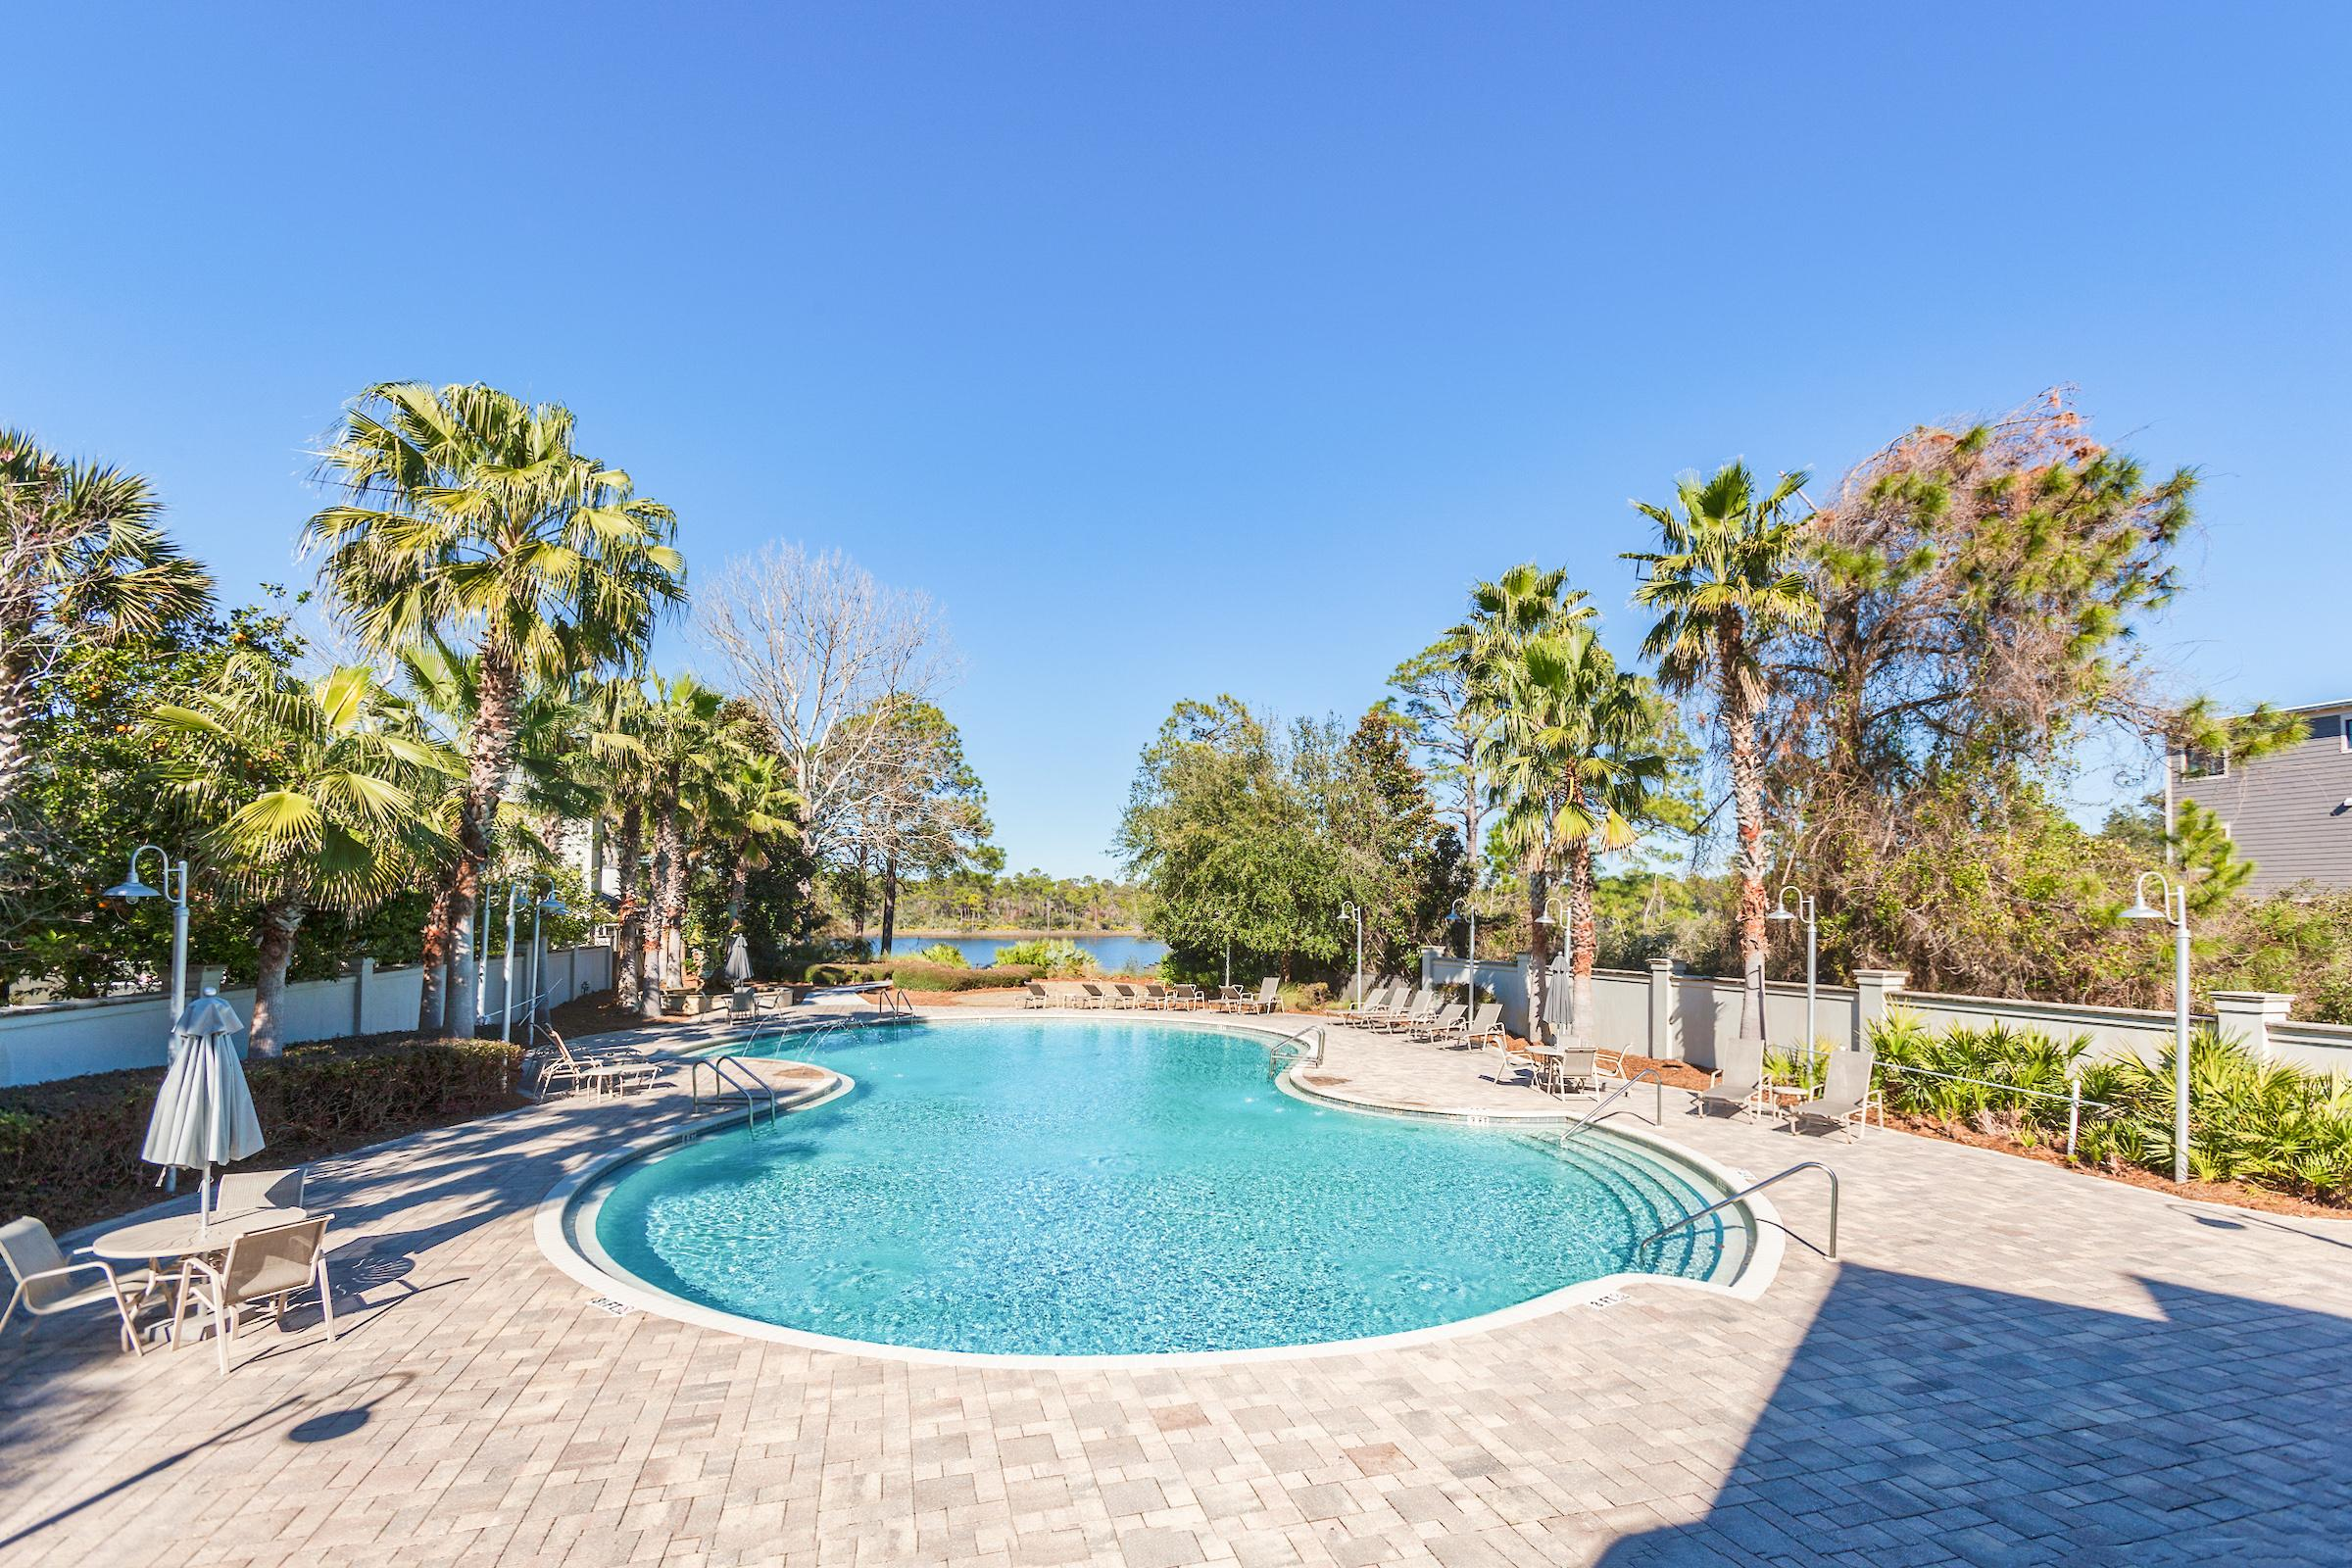 Take a dip in the resort-style pool.